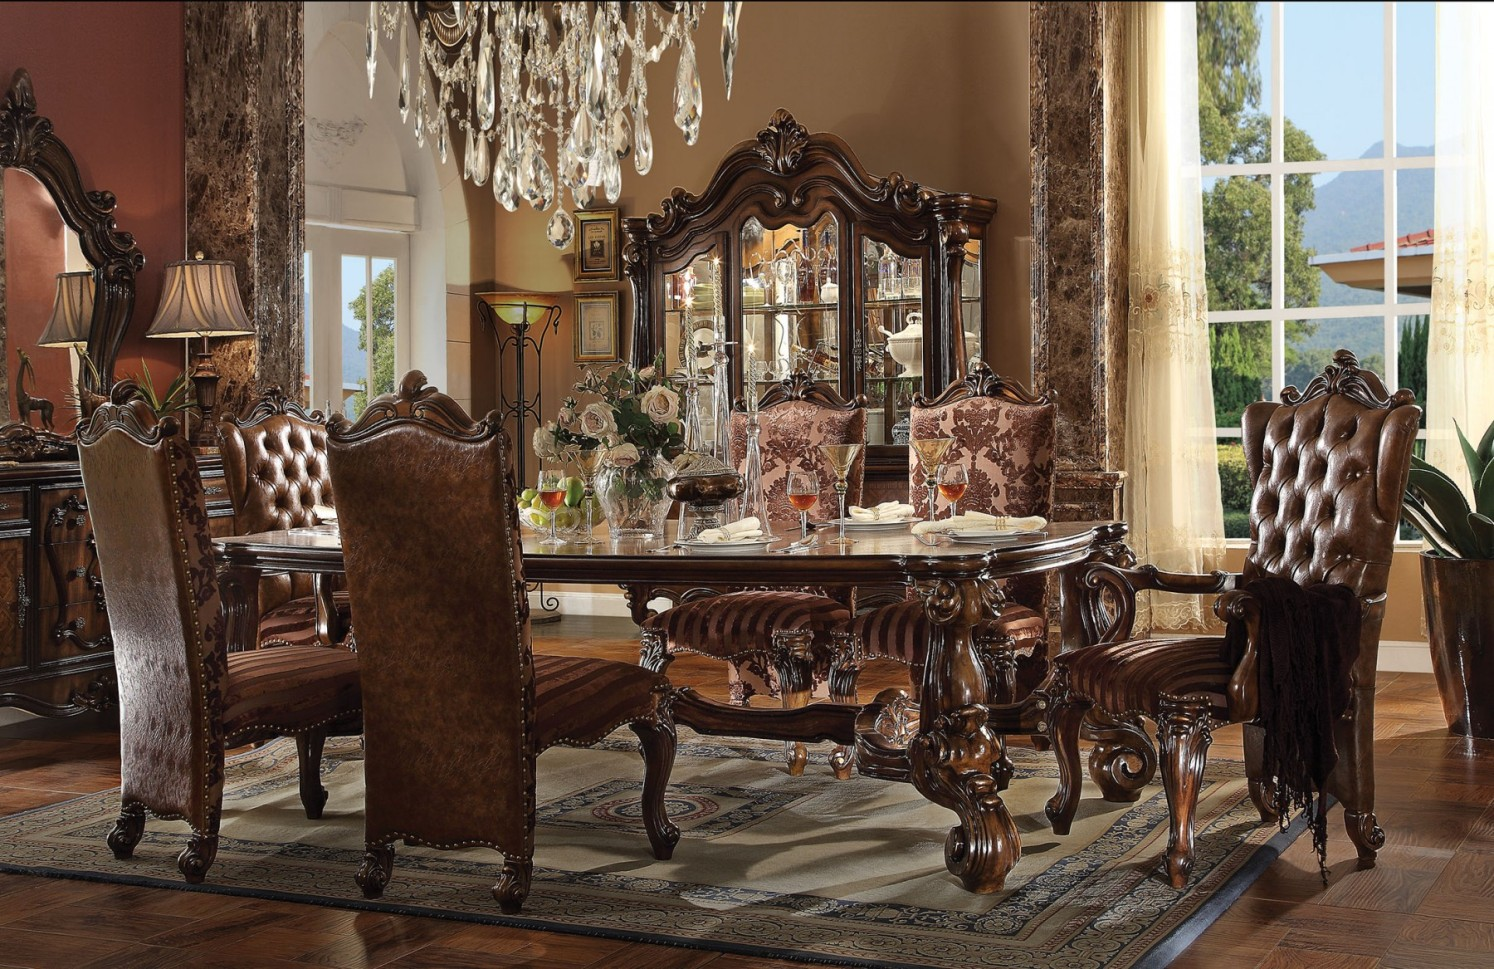 Formal dining room sets how elegance is made possible for Elegant dining room furniture